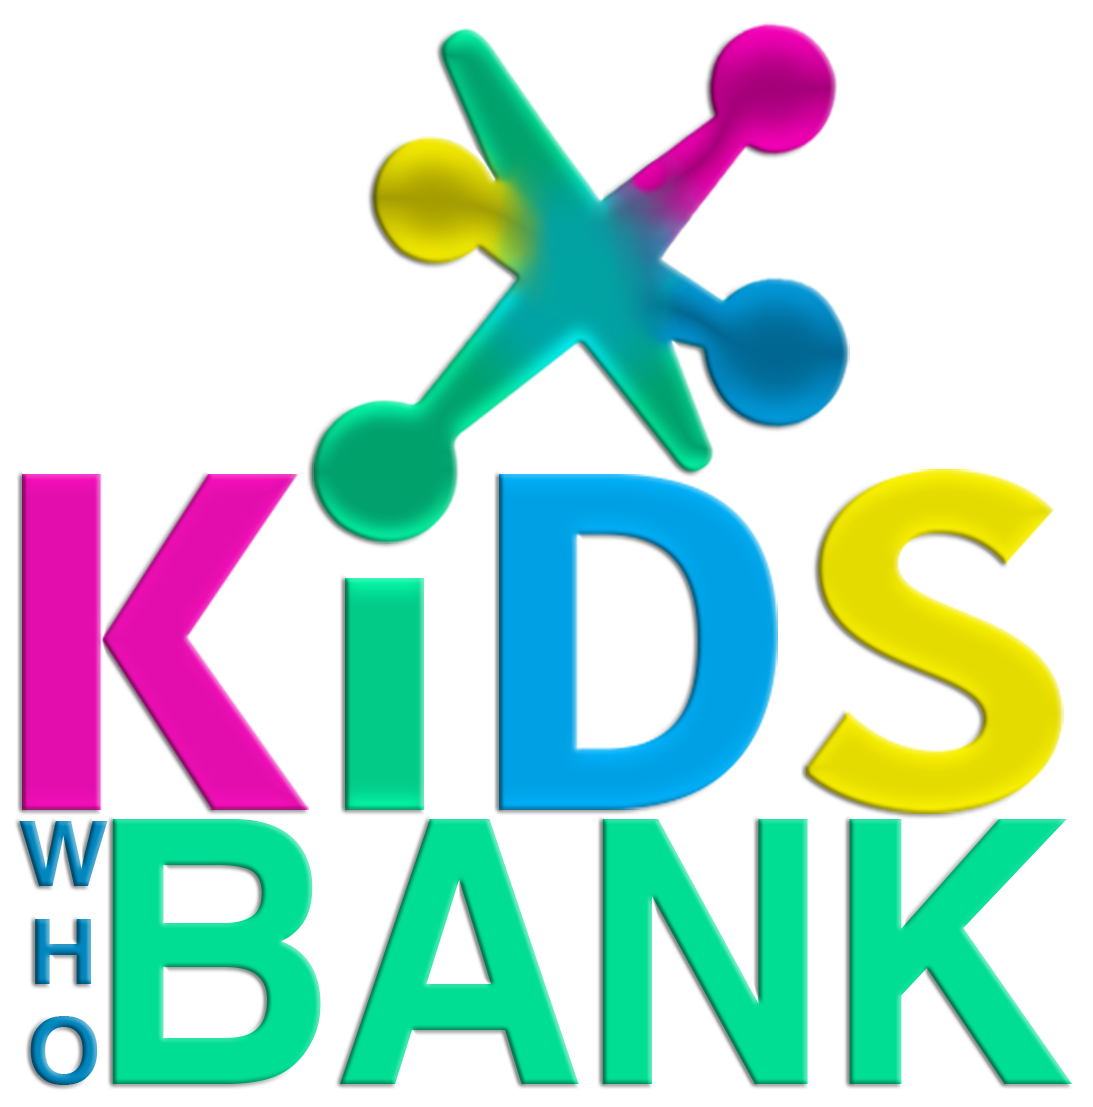 Wasted money clipart graphic freeuse library A BASE IN MONEY FOR TODDLERS — Kids Who Bank graphic freeuse library